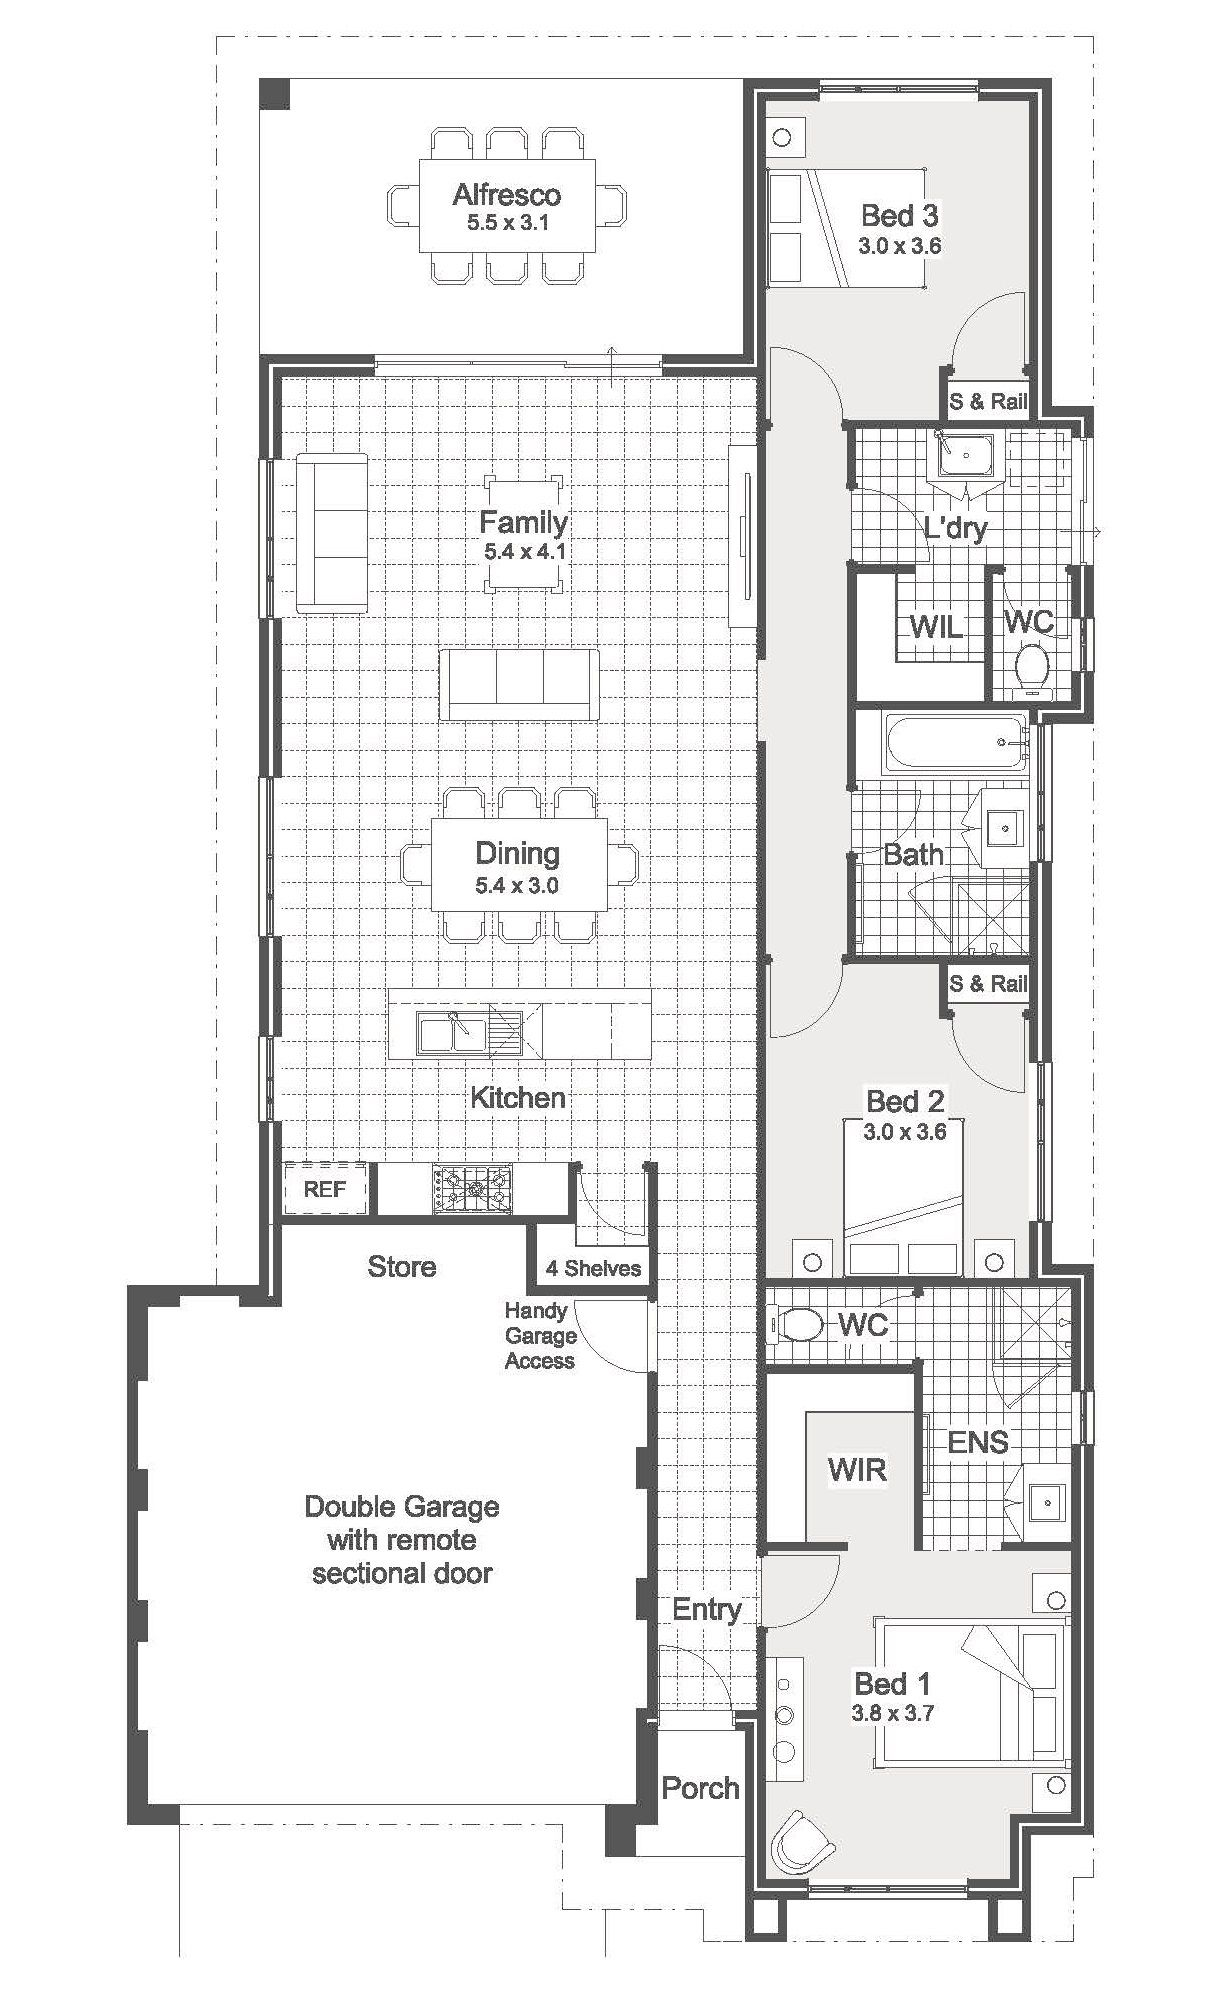 3 Bedroom Home Designs And Plans Architectural Floor Plans Weatherboard House House Plans